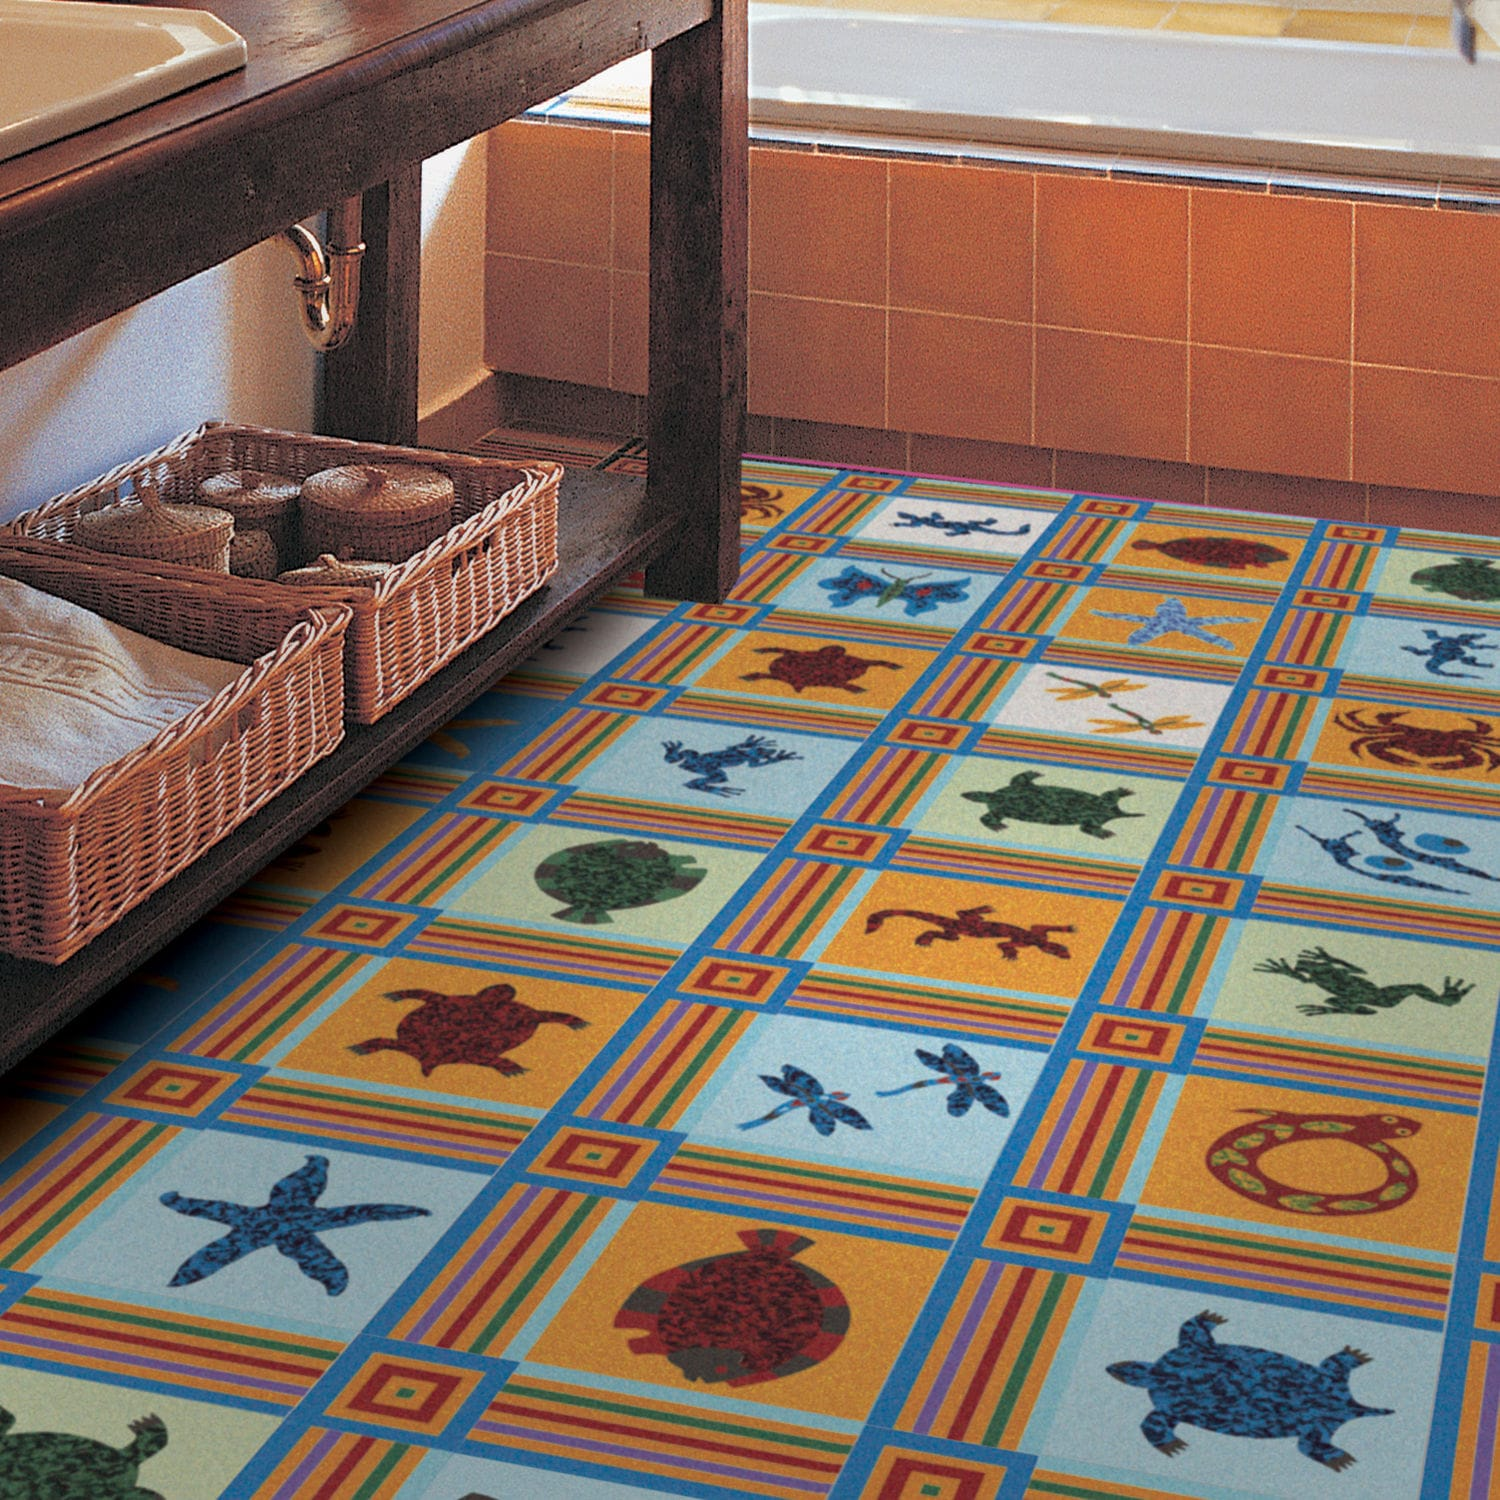 Indoor encaustic cement tile floor wall patterned fancy indoor encaustic cement tile floor wall patterned fancy animals by martine murat dailygadgetfo Choice Image